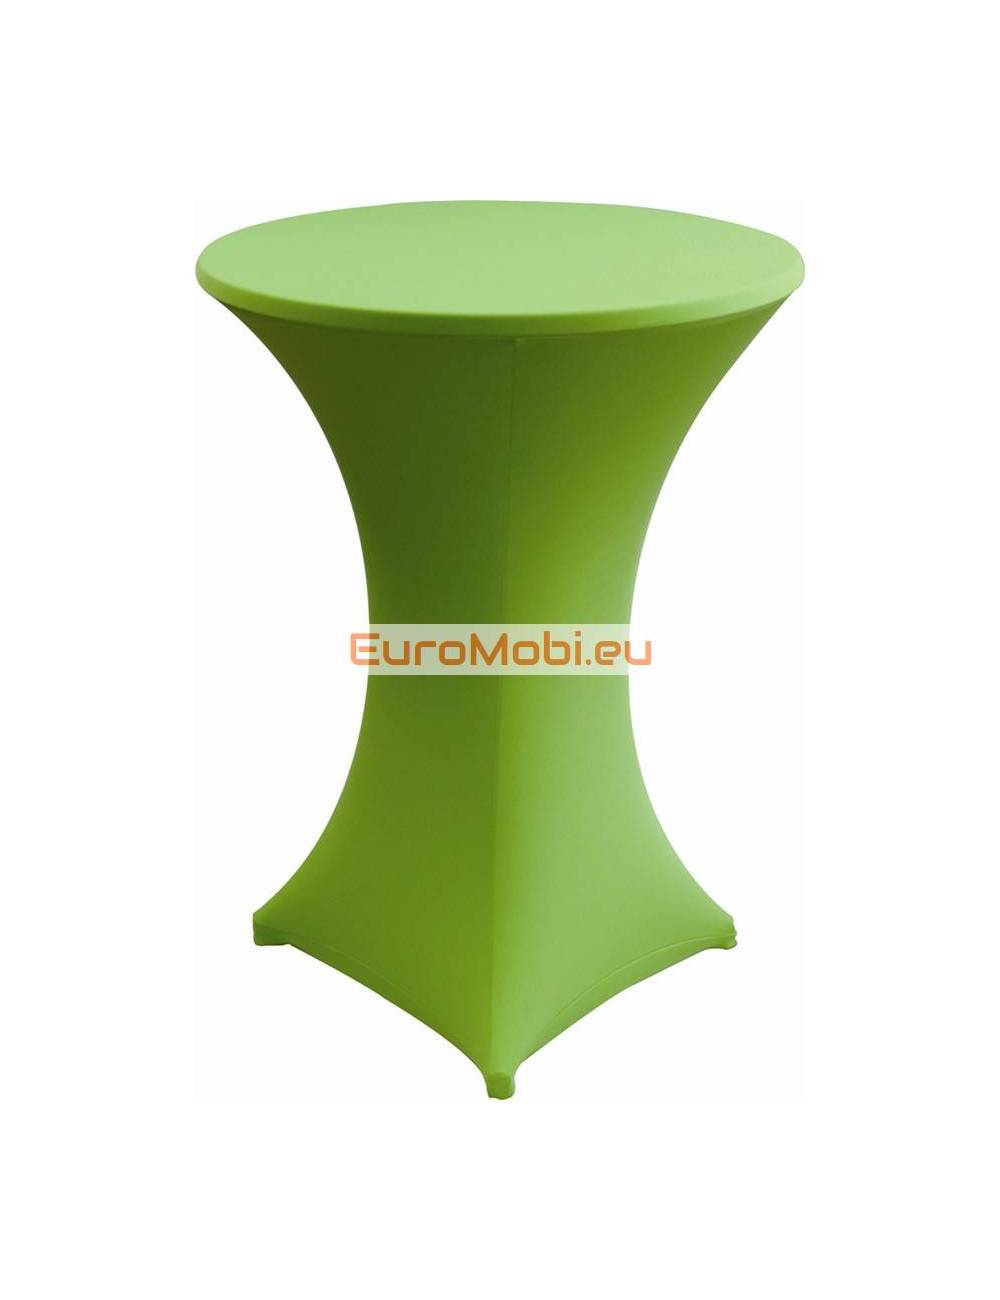 Cover and top stretch for standing table round green ligth